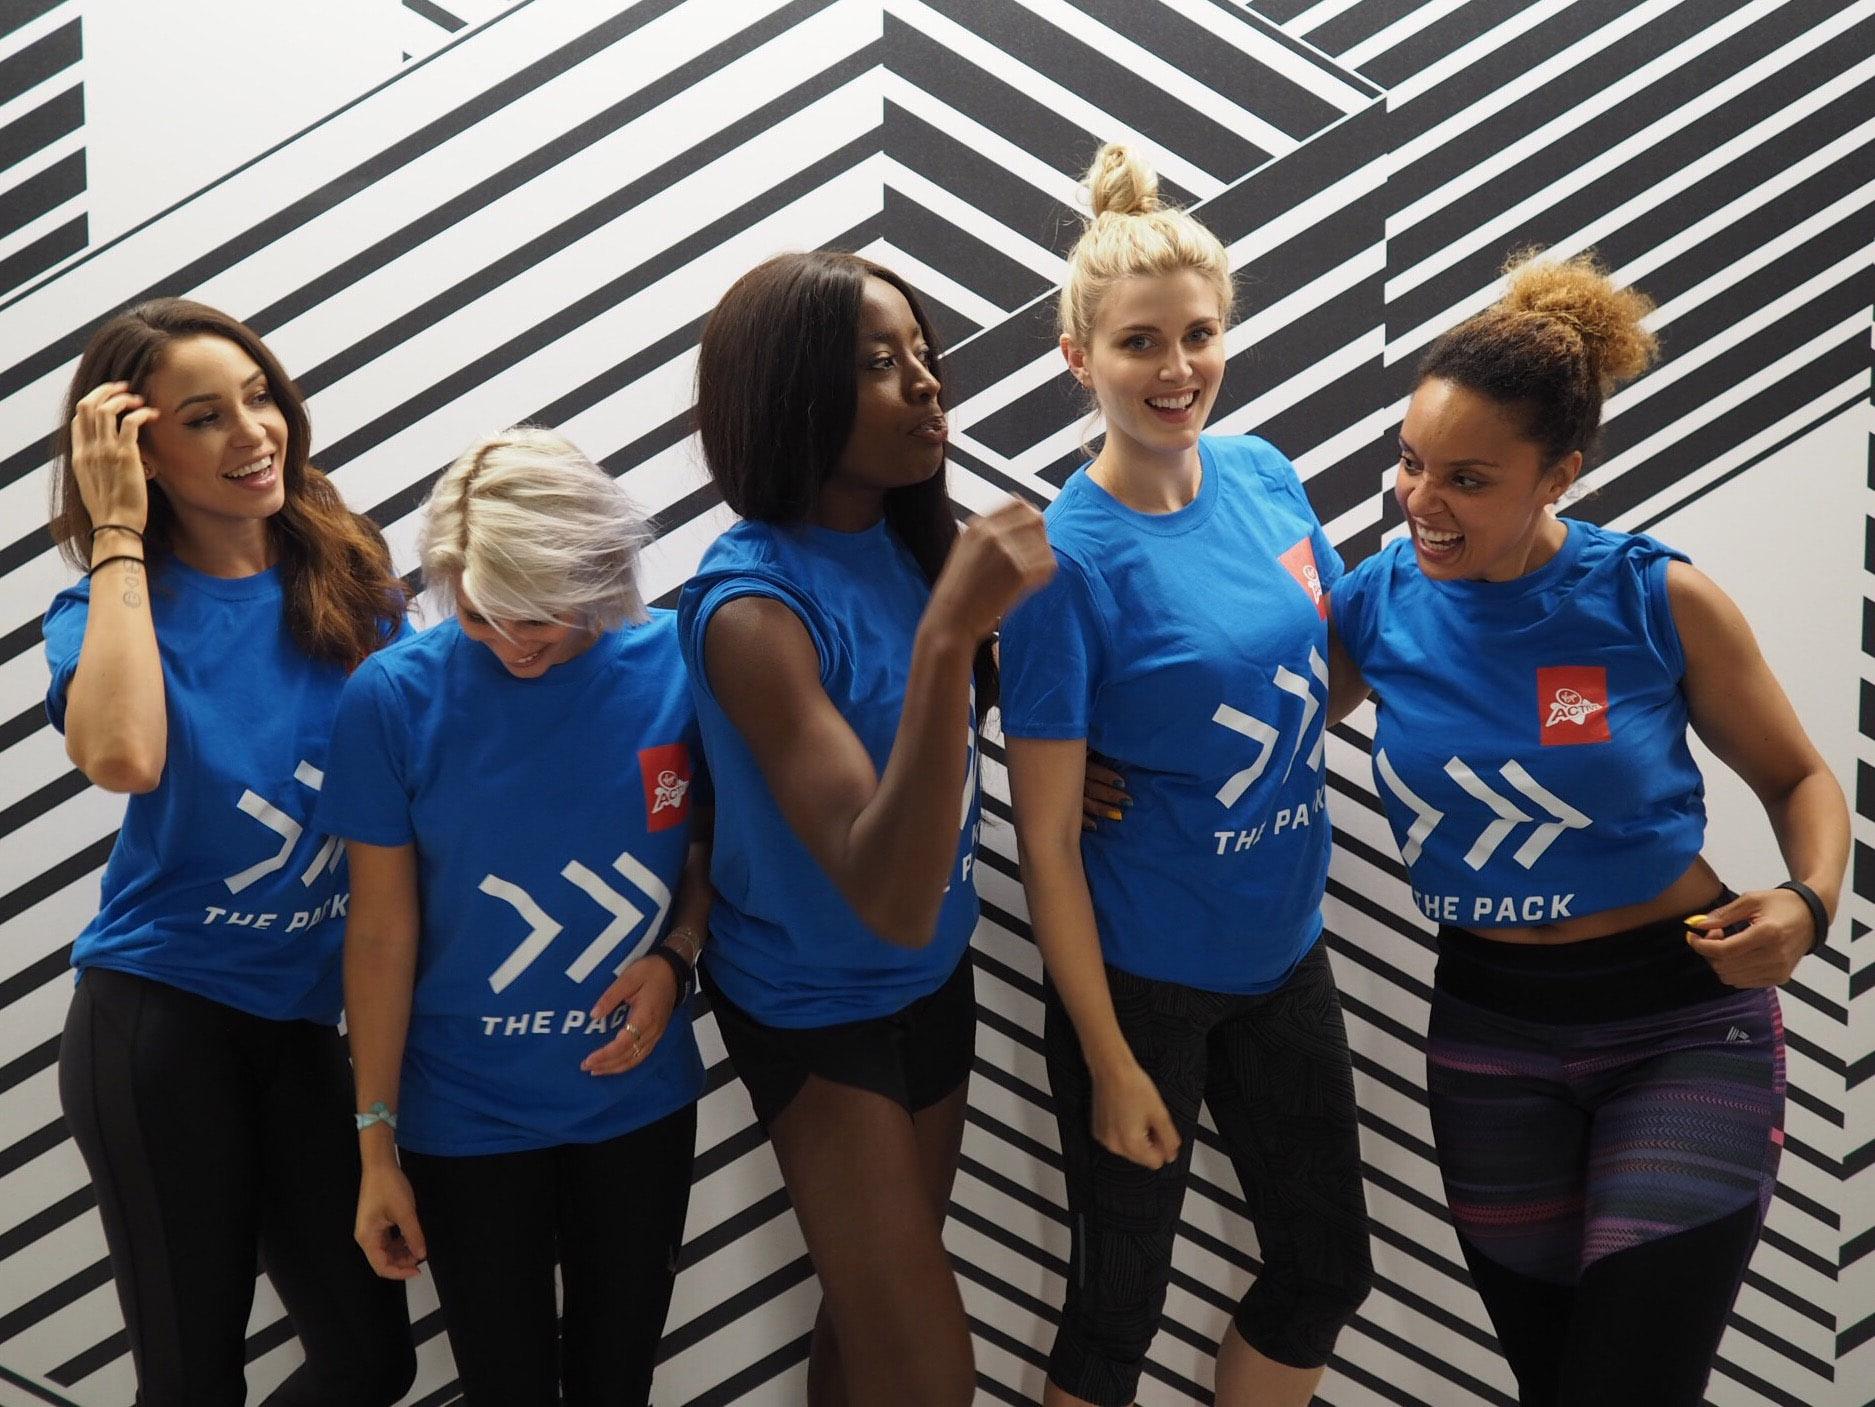 Danielle Peazer, Pips Taylor, Aj Odudu, Ashley James, Pandora Christie fitness with friends